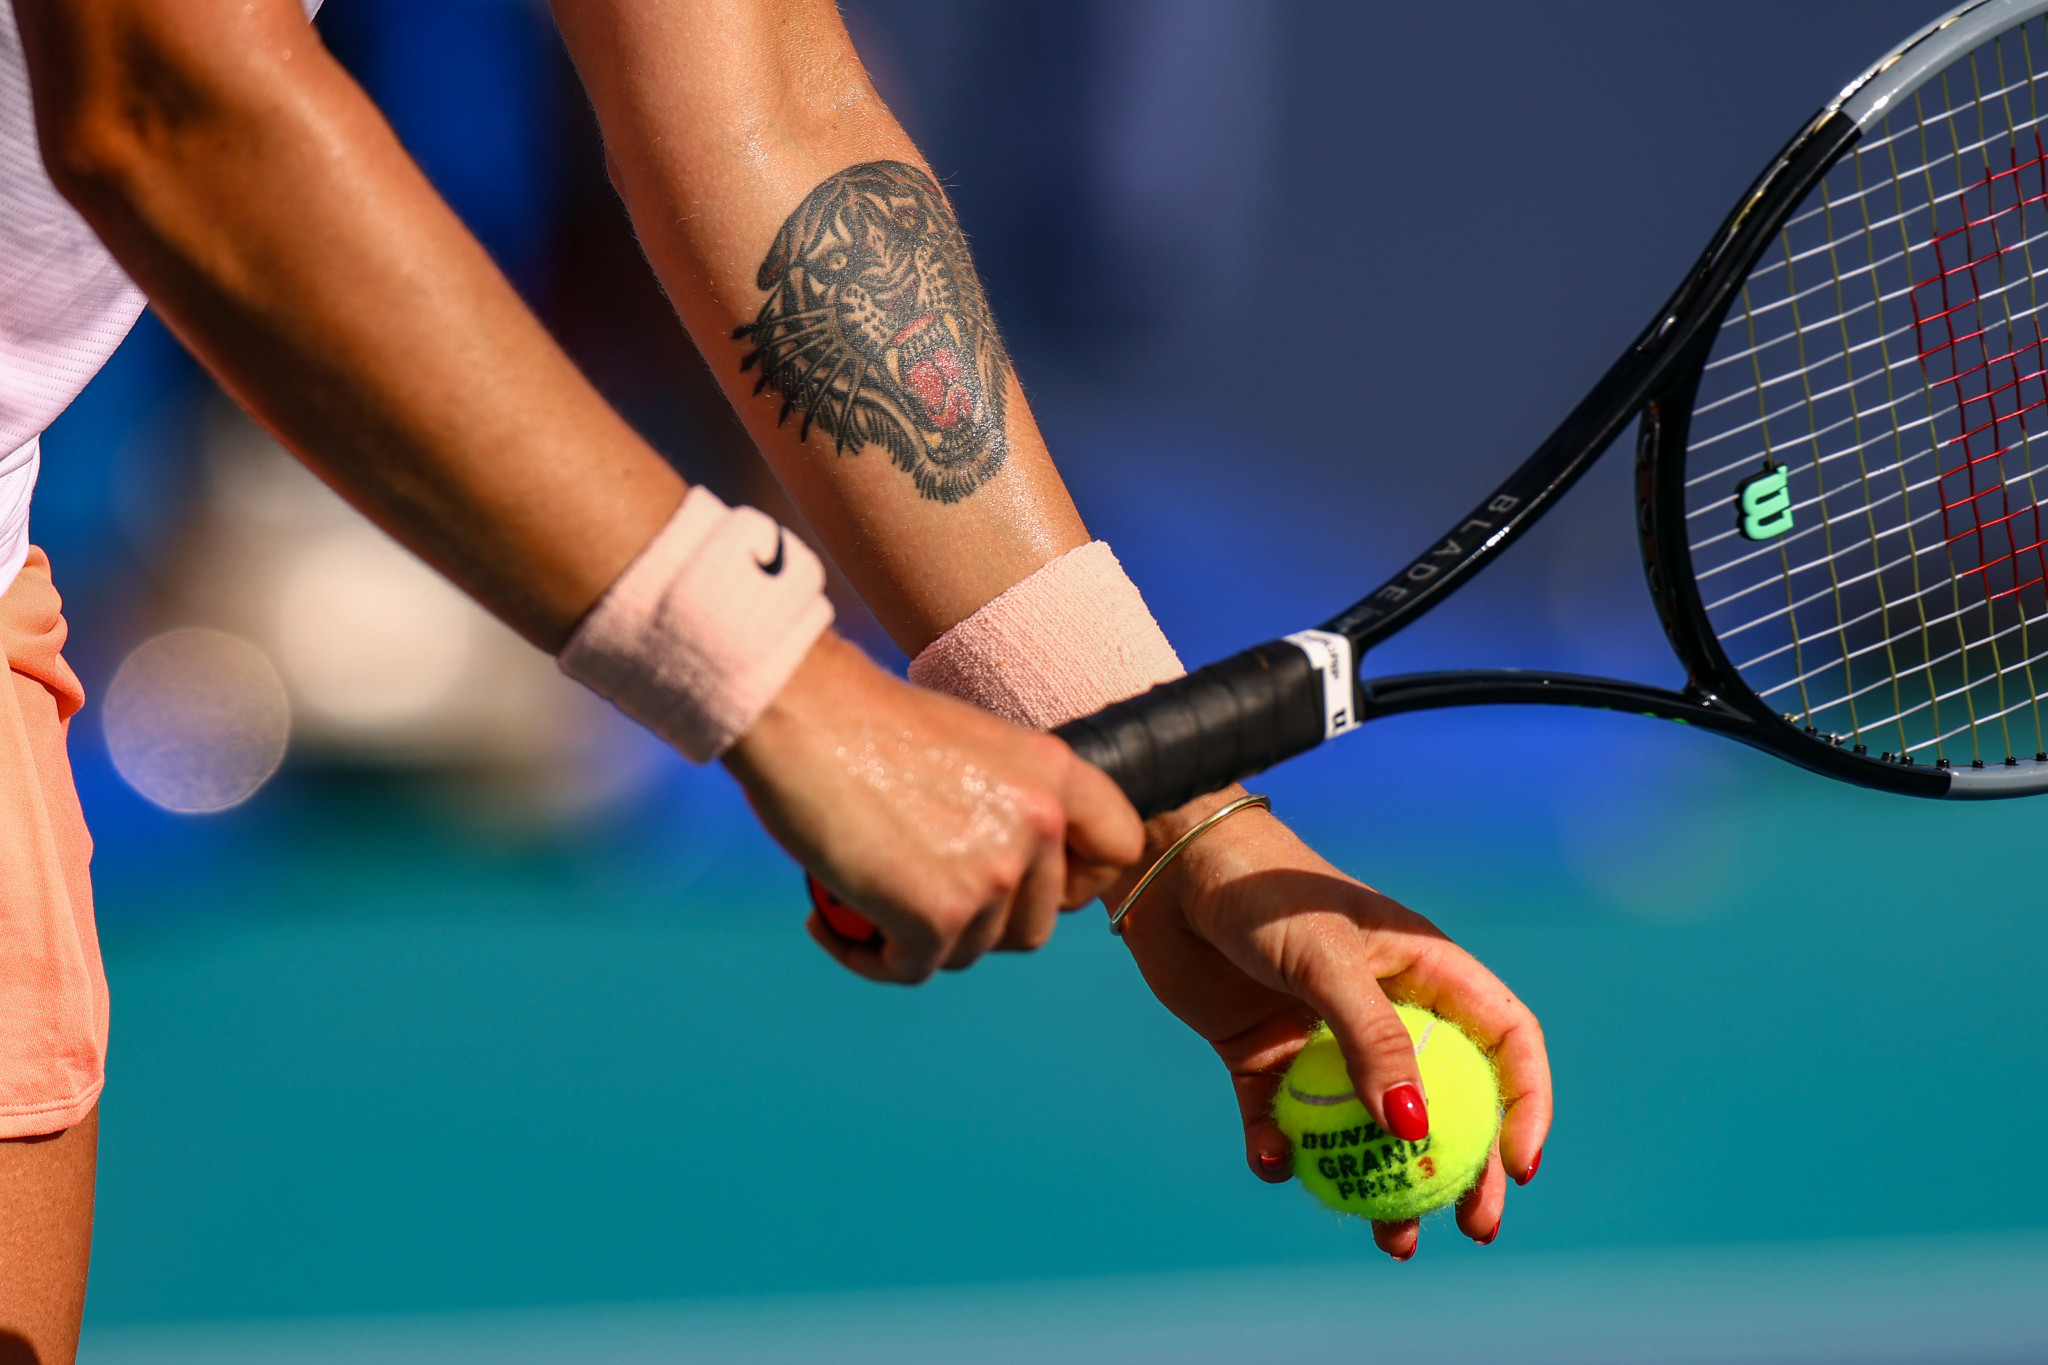 The changes are part of adjustments aimed at combatting the impact of COVID-19 on the rankings ©Getty Images